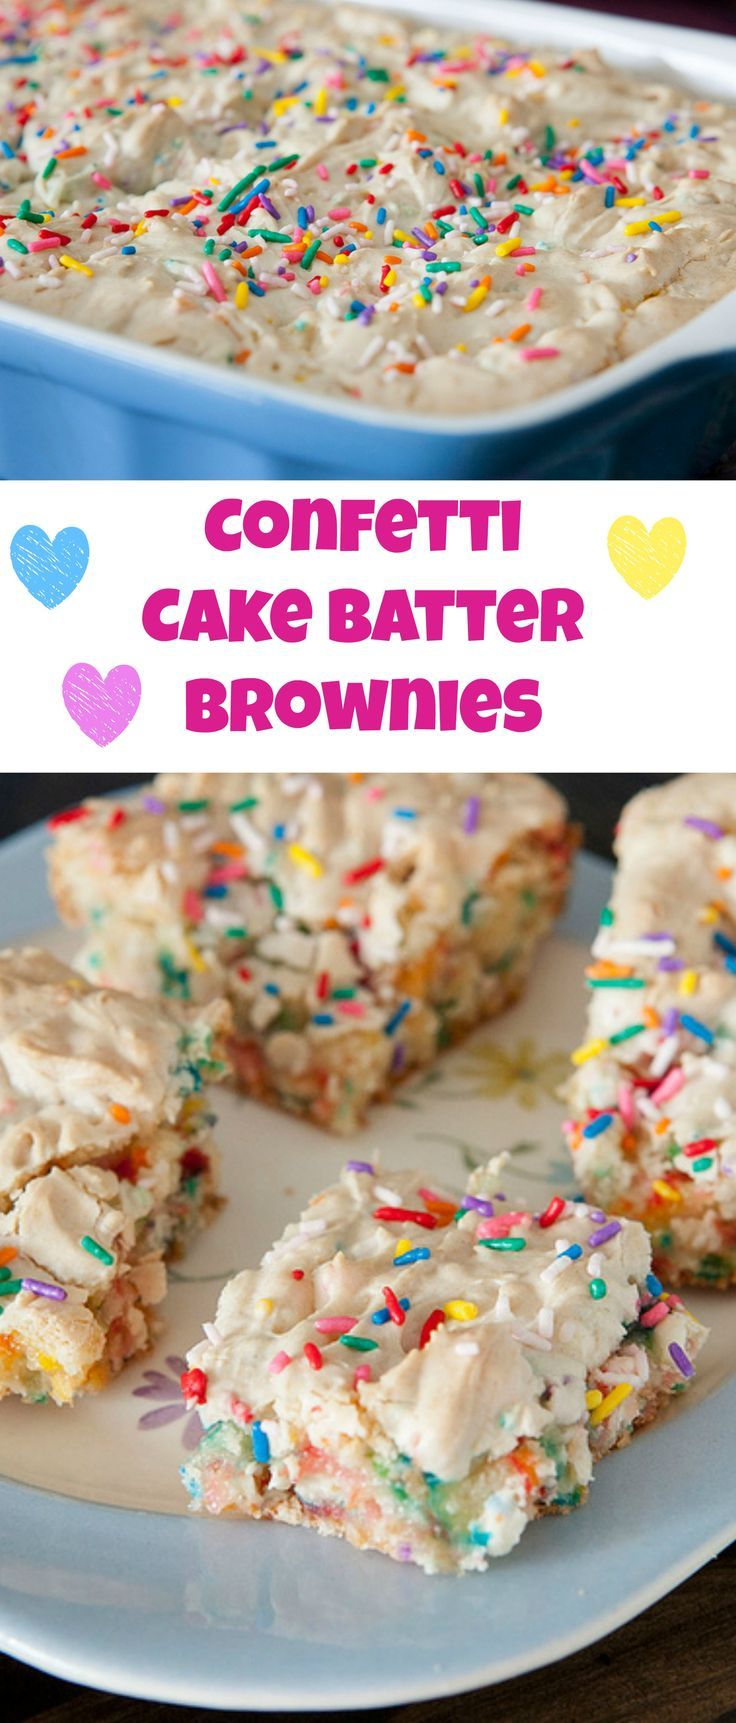 Confetti Sprinkle Cake Batter Brownies - these are ooey gooey good!